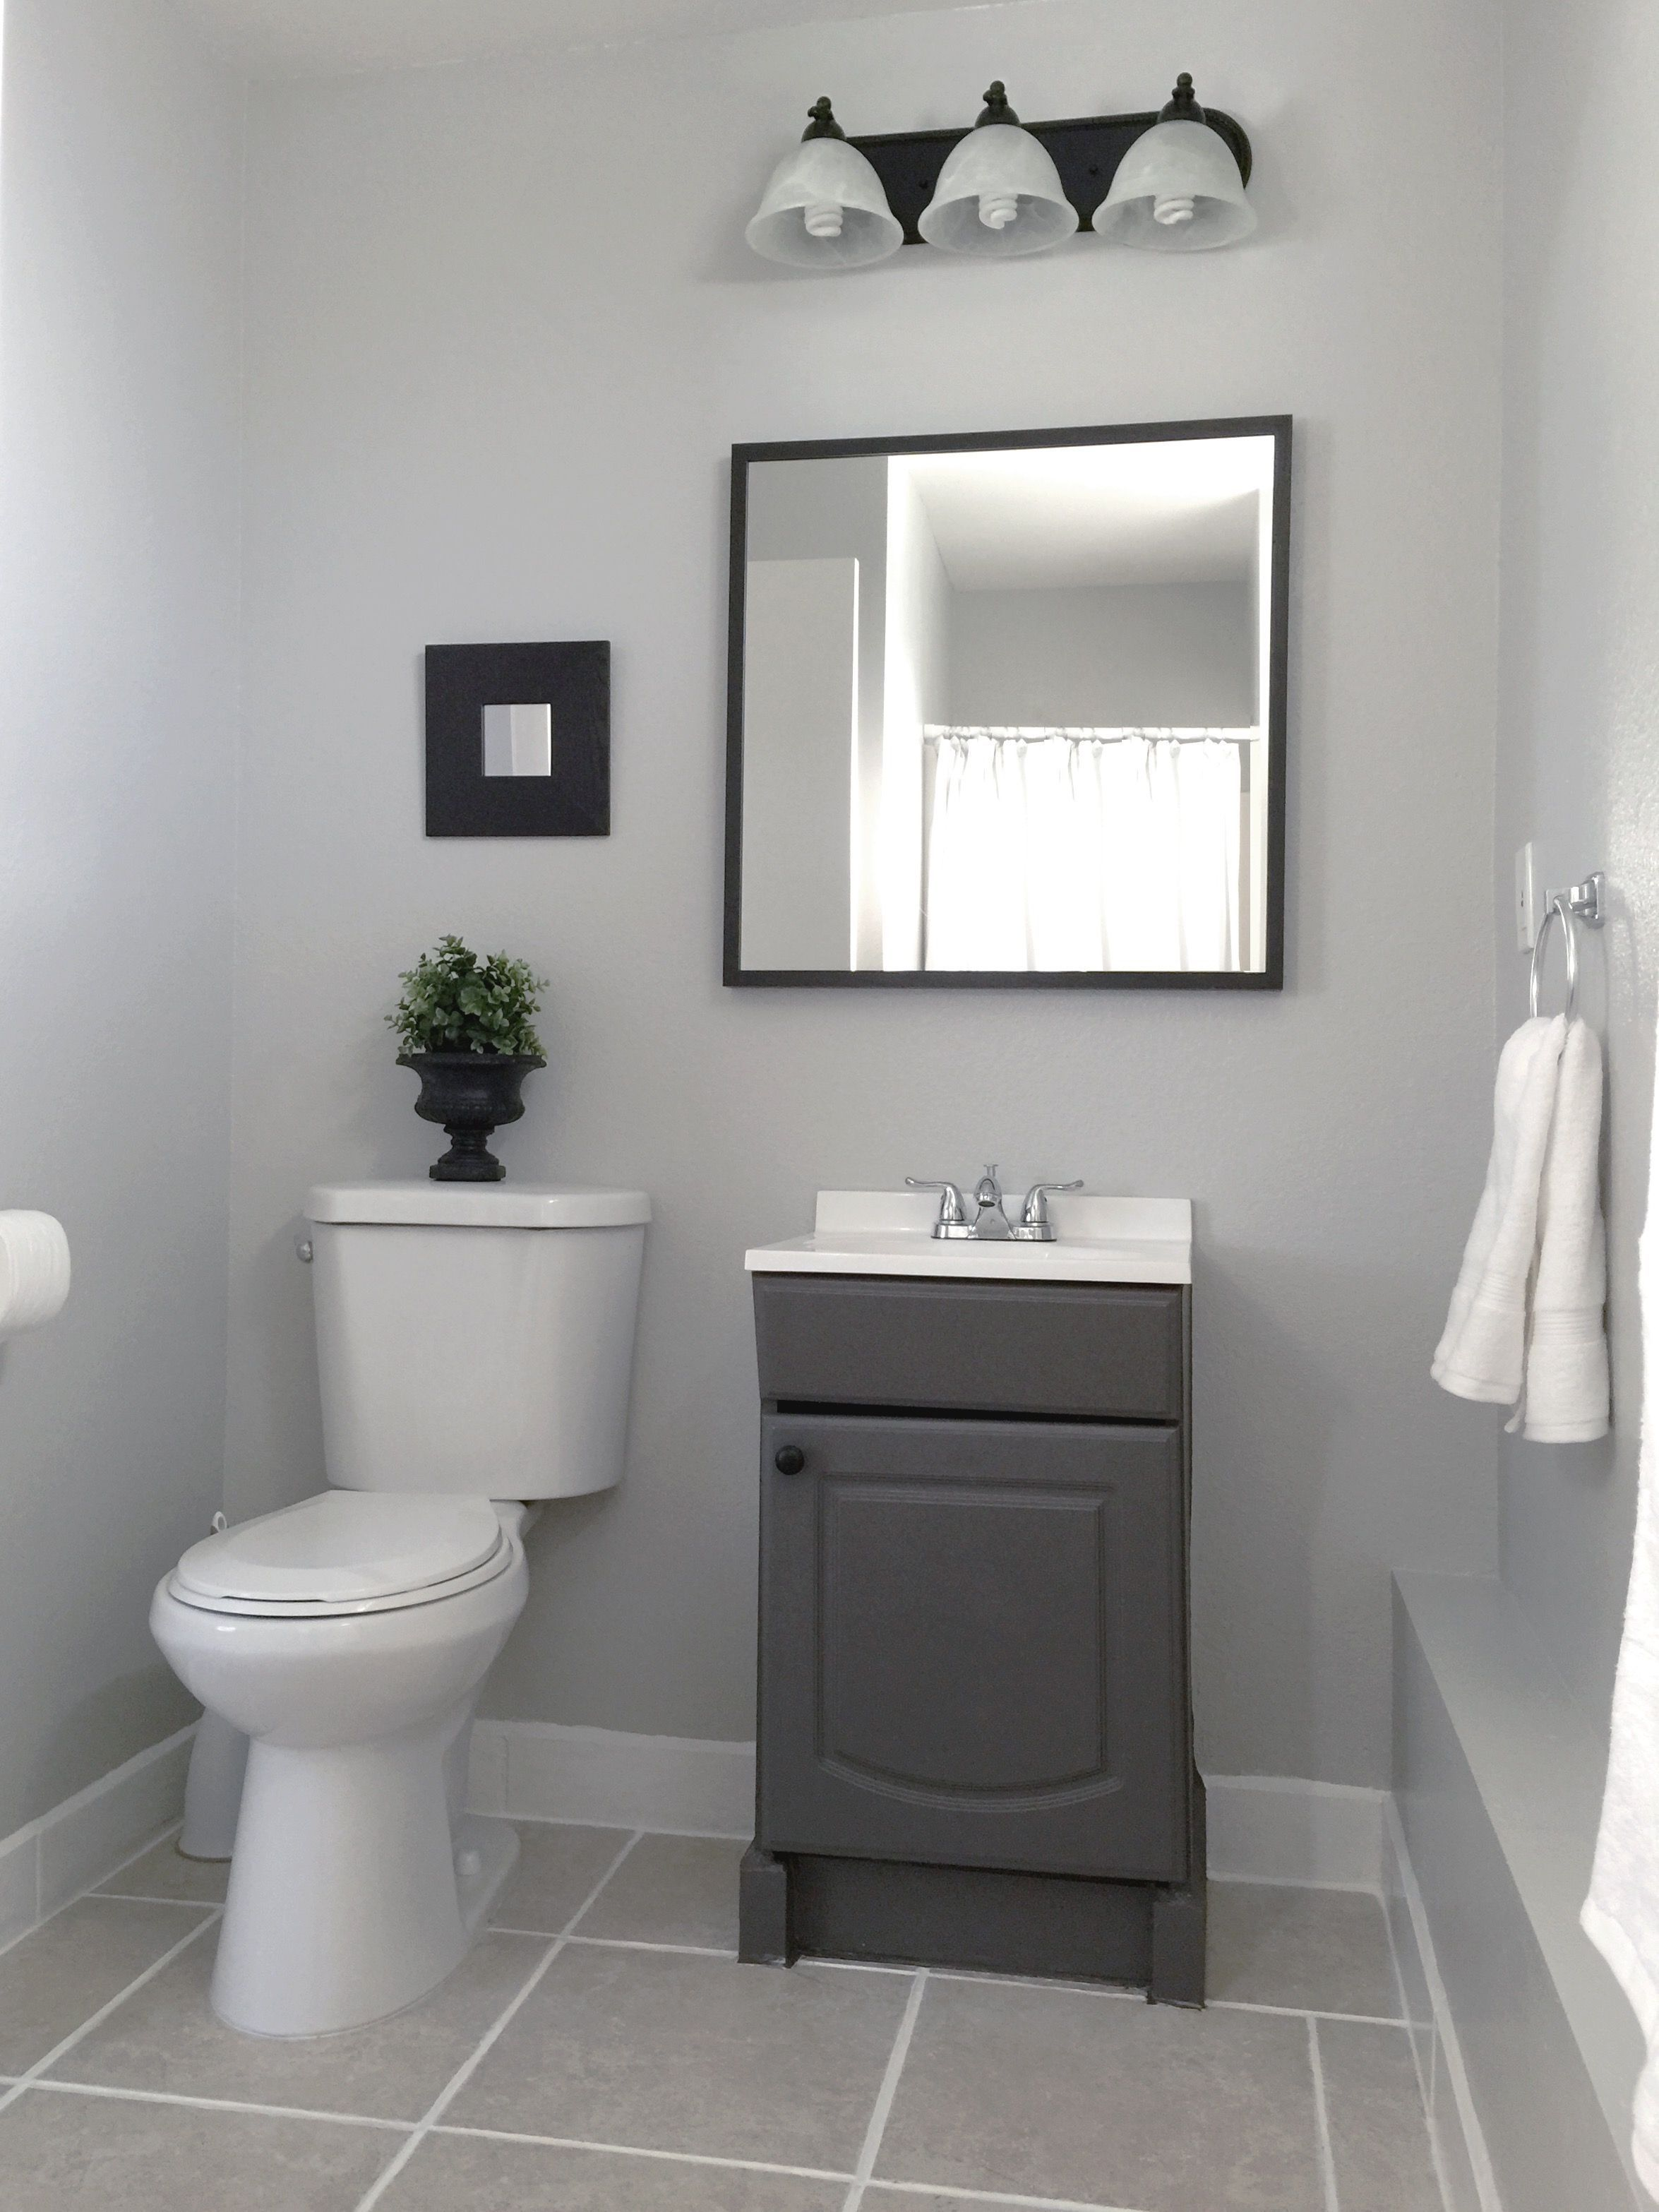 Popular Paint Colors For Small Bathroom